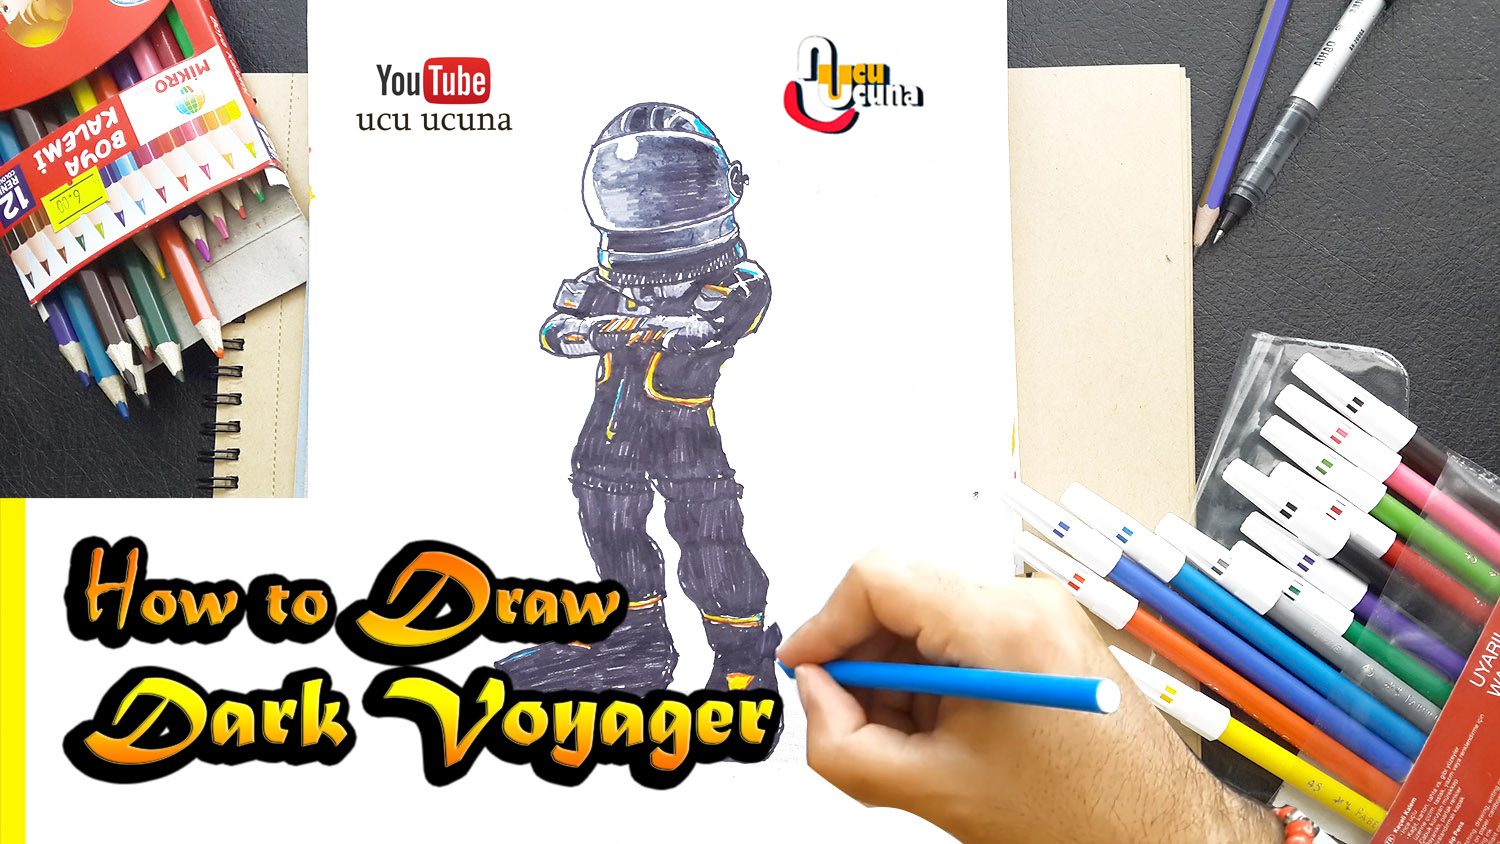 How to draw dark voyager tutorial youtube channel name is ucu ucuna learn how to draw dark voyager from fortnite step by step beginner drawing tutorial of the voyager skin from fortnite